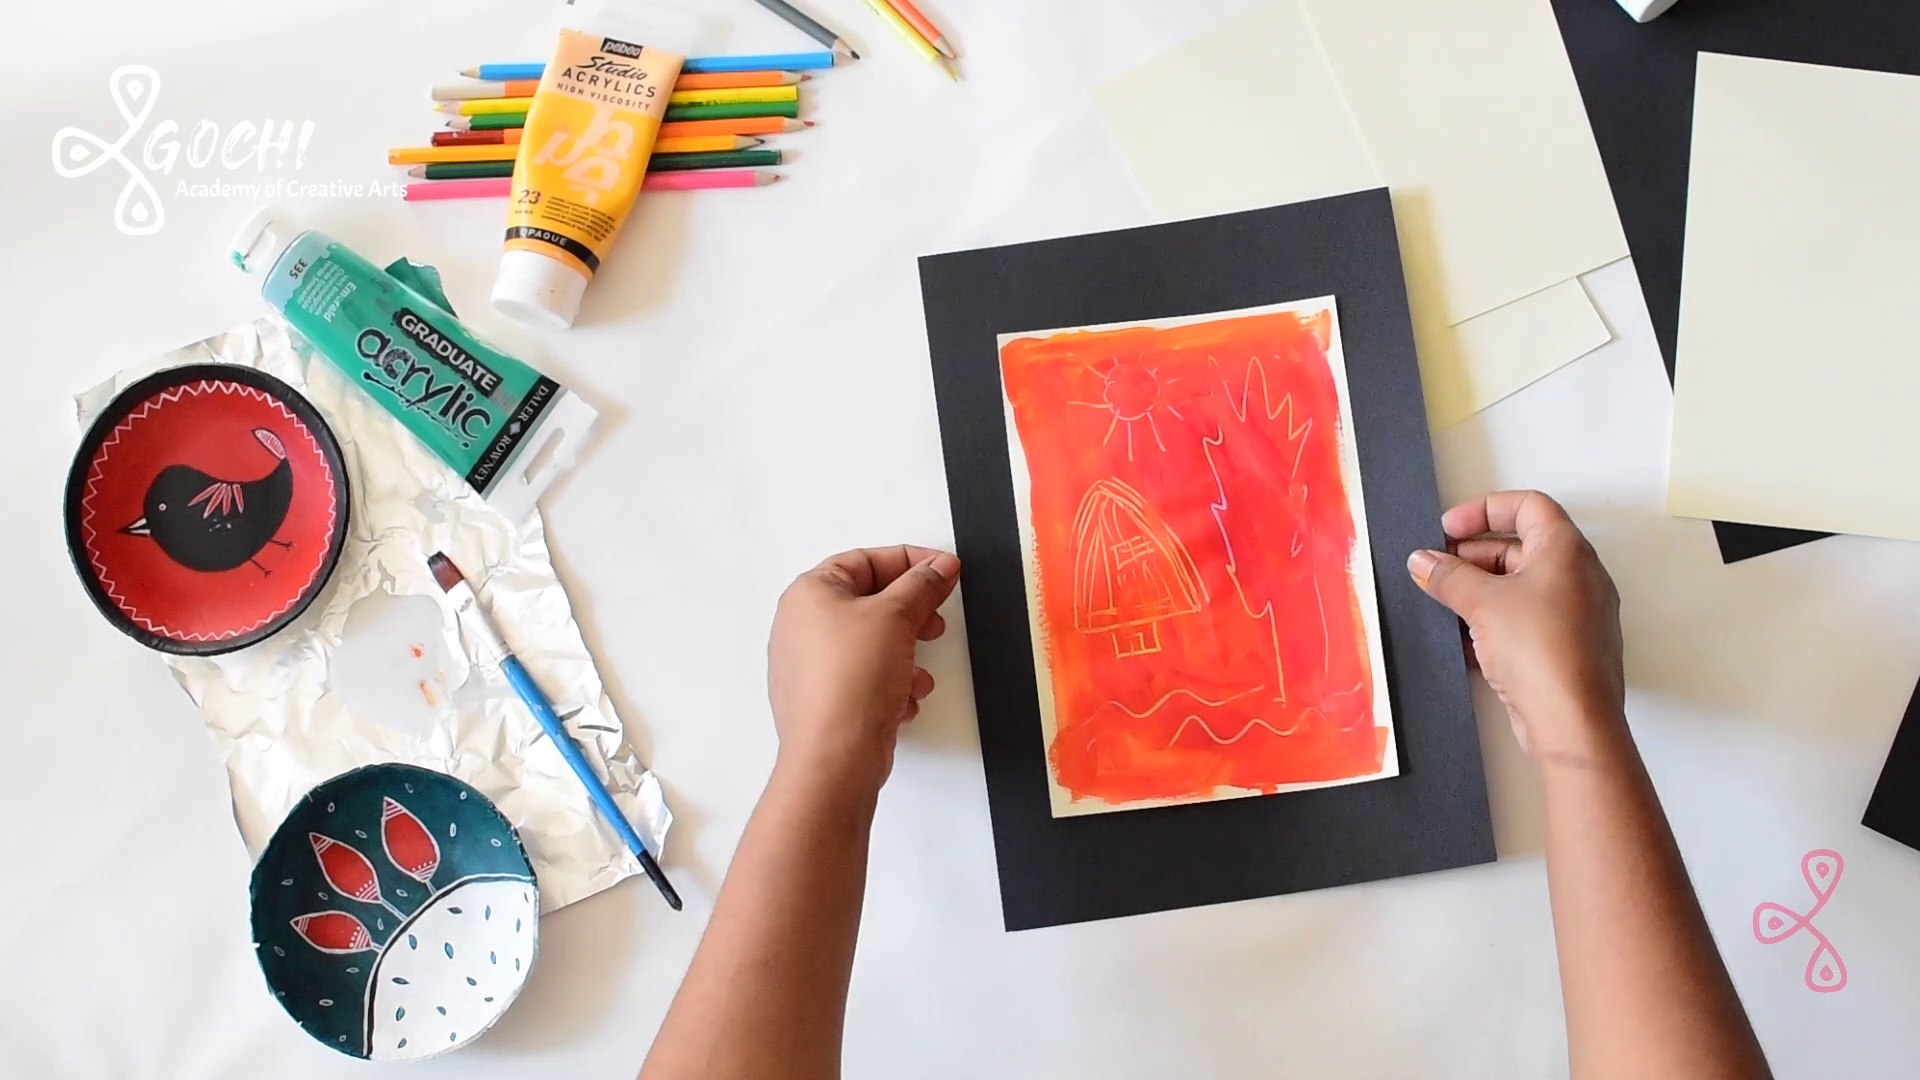 Easy Creative Activity for Kids - Simple Framing